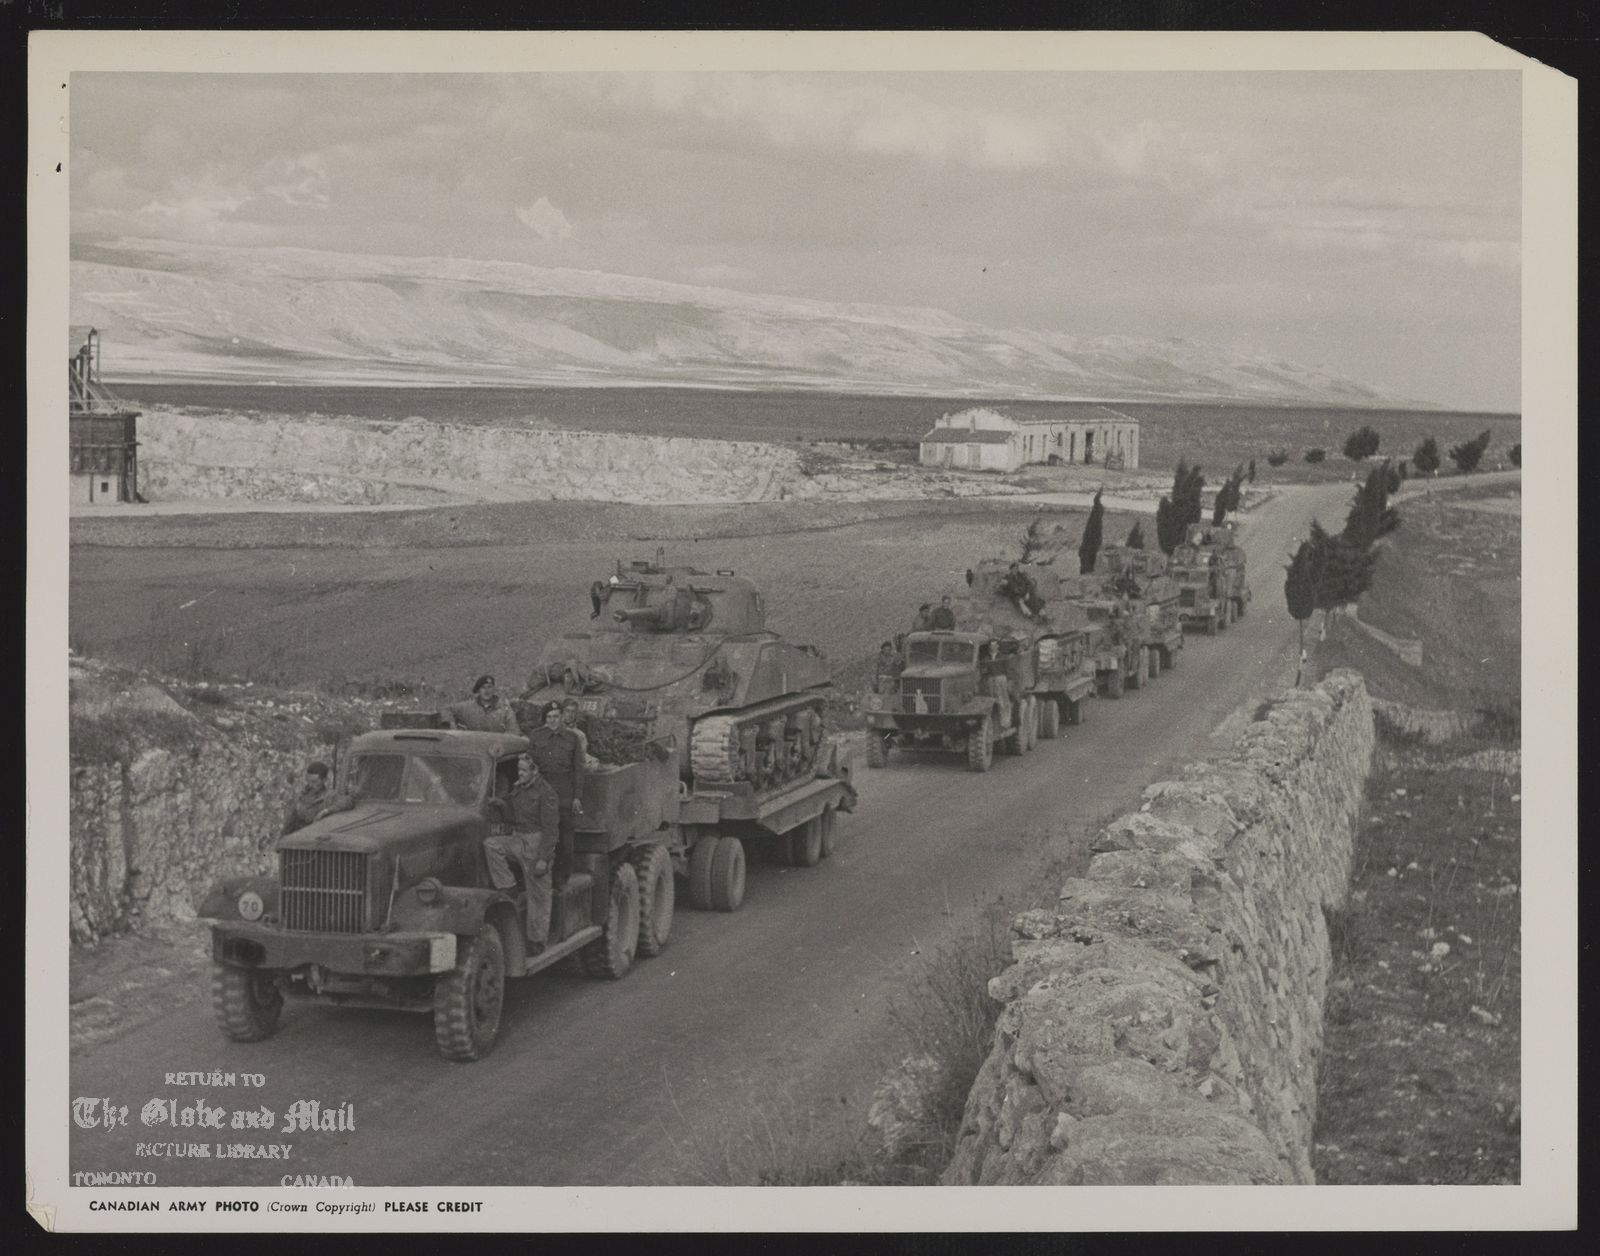 RECOVER CANADIAN TANKS FROM SEA Tanks lost in the sea by the Three Rivers Regiment in the amphibious landing which preceded the capture of Termoli, Italy, are shown here being taken away by carriers after recovery from the sea. The Three rivers Regiment destroyed 10 German tanks at Termoli in support of the Irish Brigade. (Canadian Army Overseas Photo)